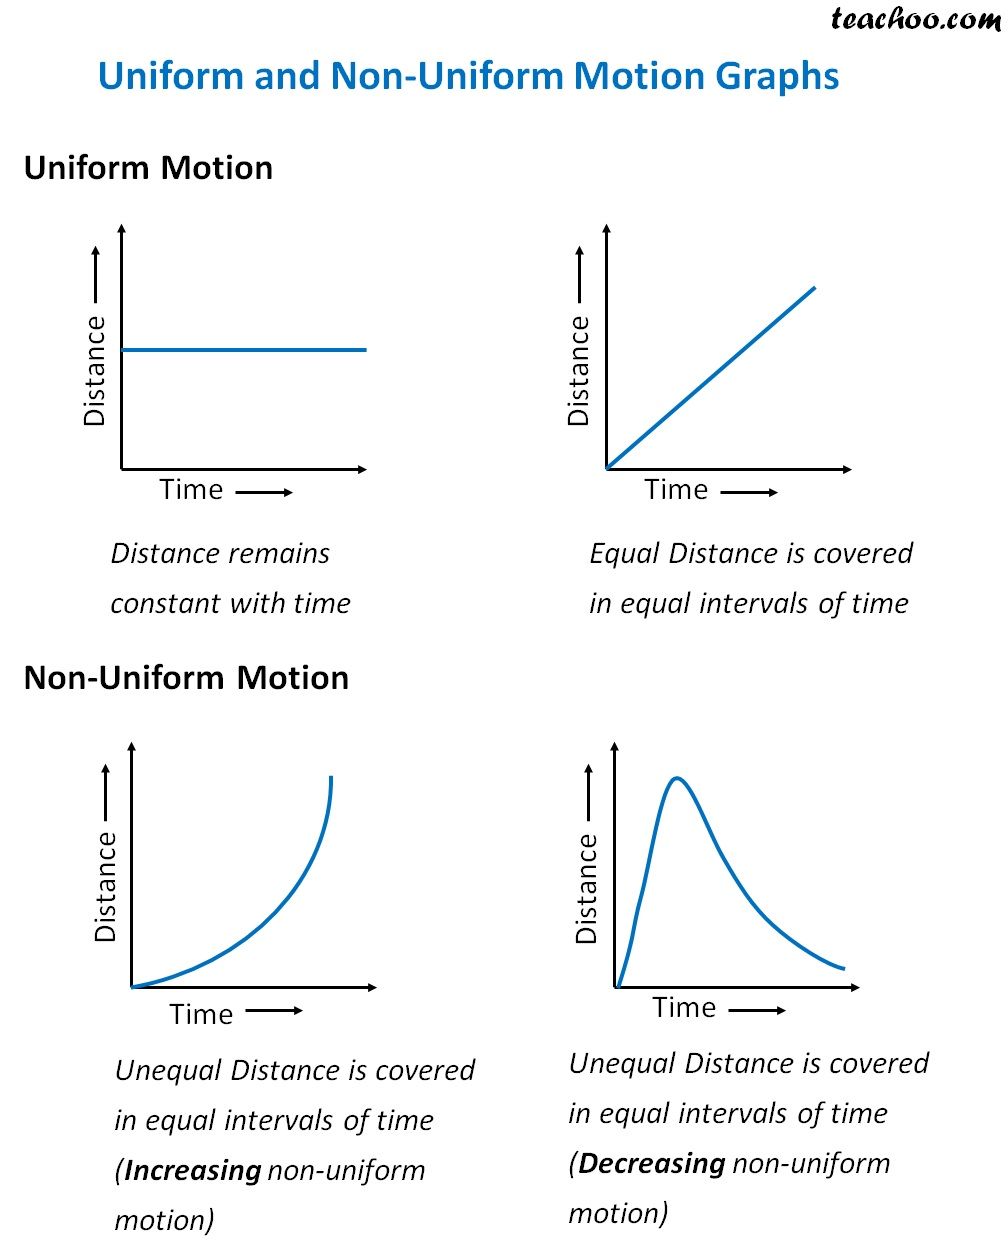 Uniform Non Uniform Motion Graphs.jpg